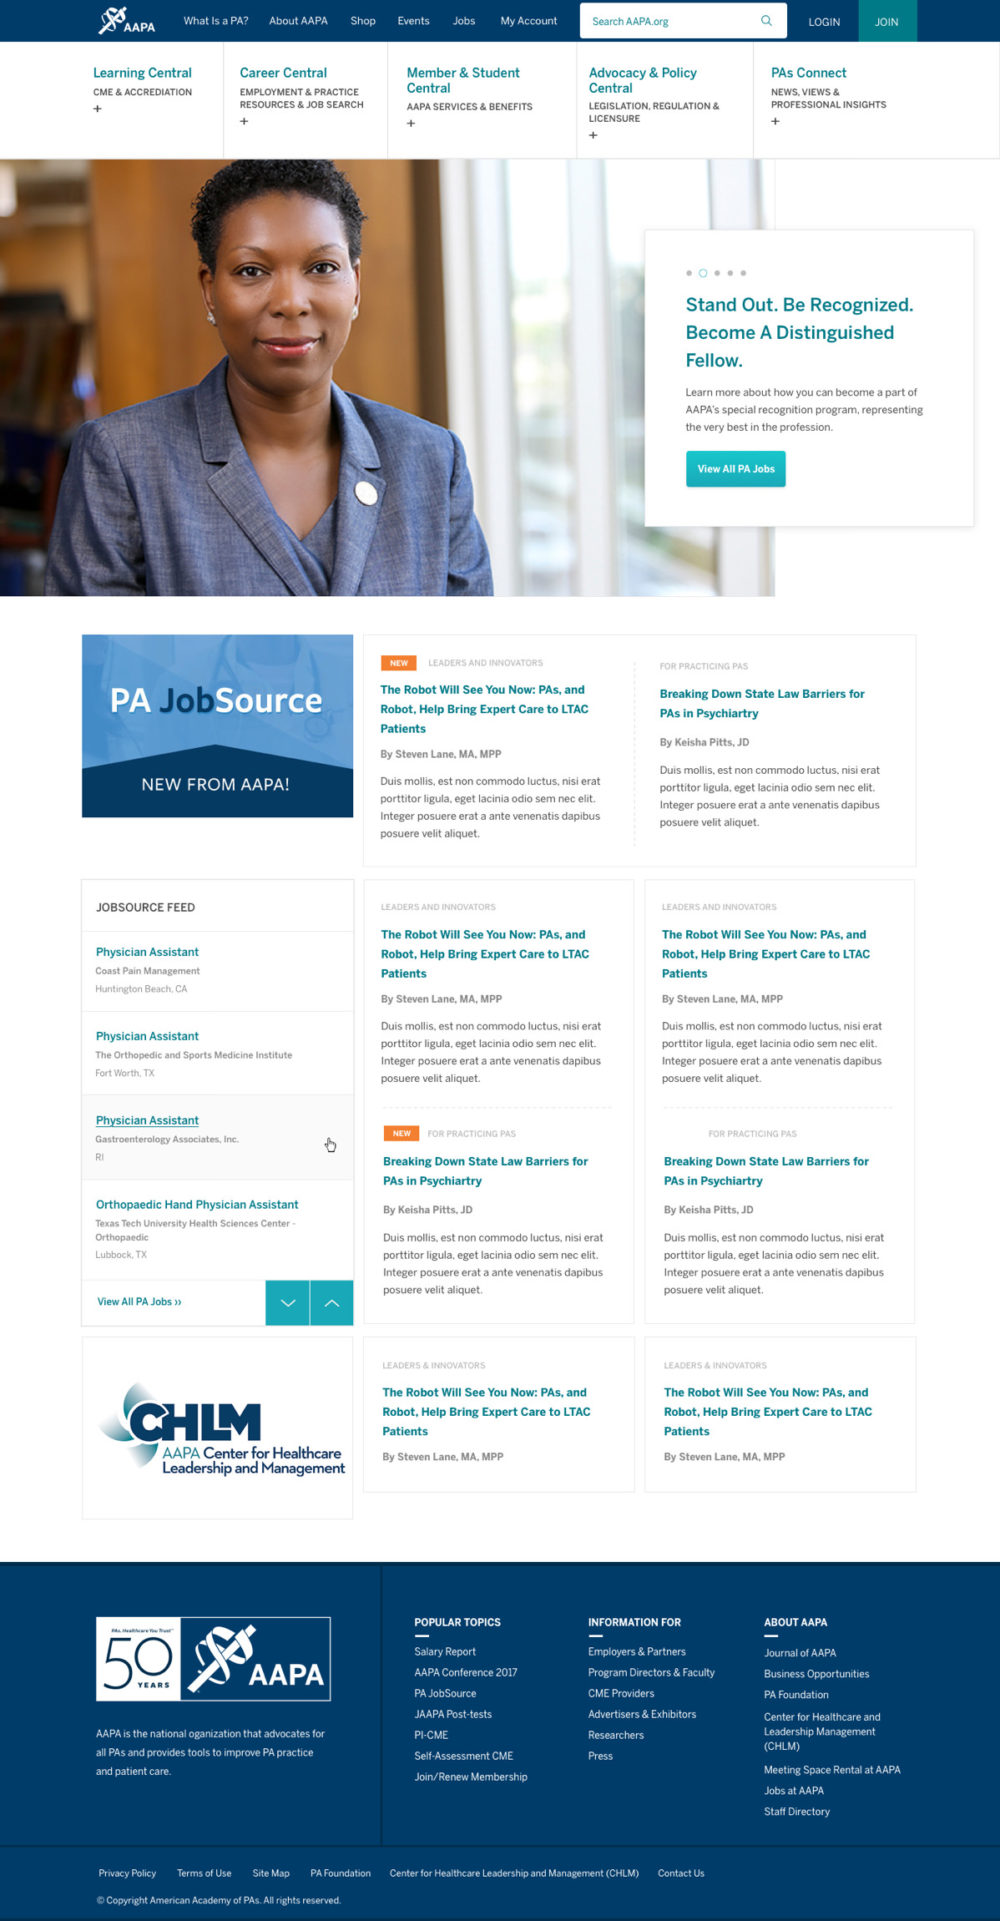 American Academy of Physician Assistants WordPress homepage mockup